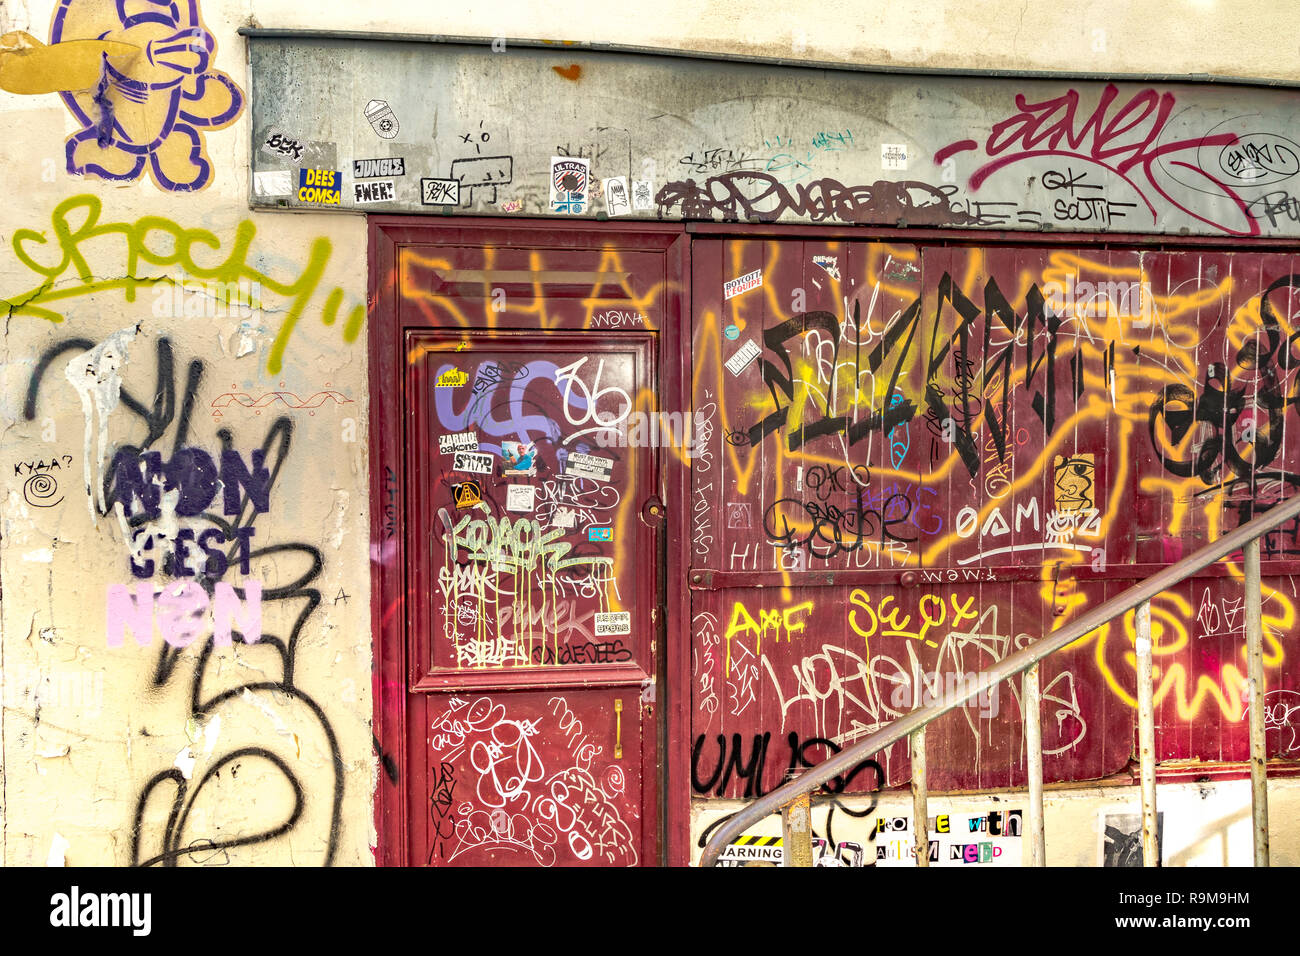 Boarded up red door and window covered in graffiti and spray paint , Montmartre Paris - Stock Image